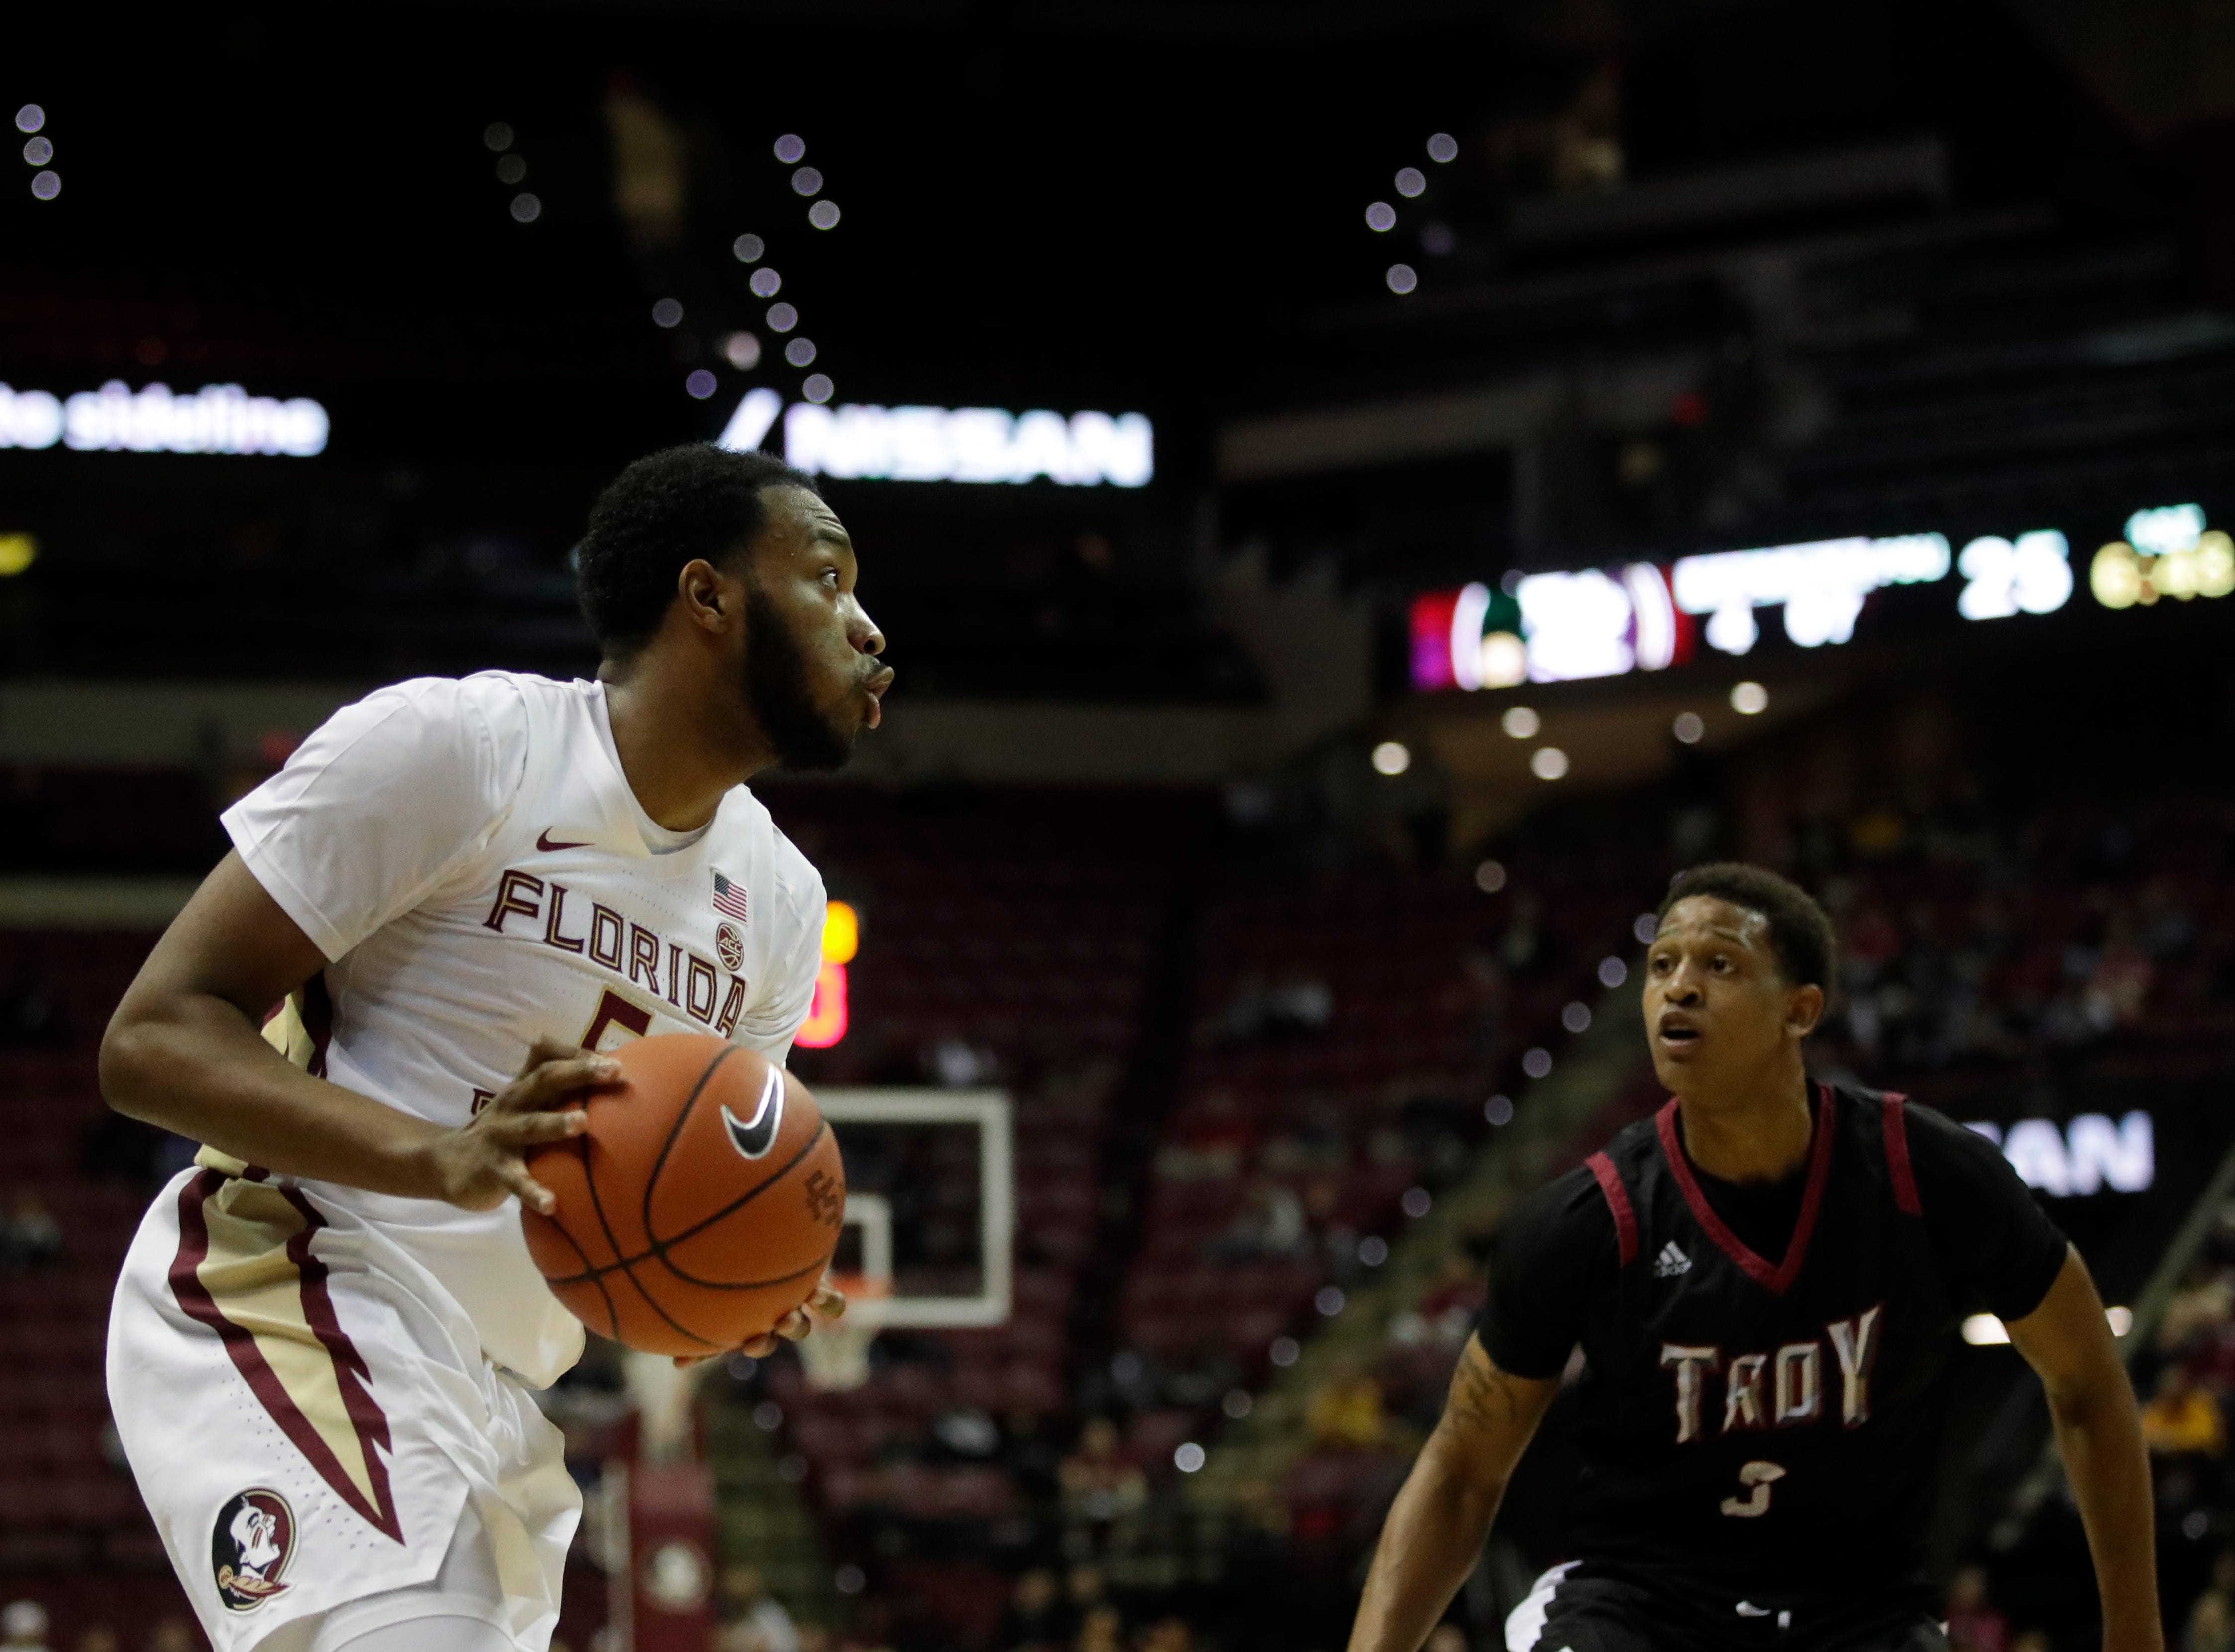 Florida State Seminoles guard PJ Savoy (5) looks for a shot during a game between FSU and Troy University at Donald L. Tucker Civic Center Monday, Dec. 3, 2018.